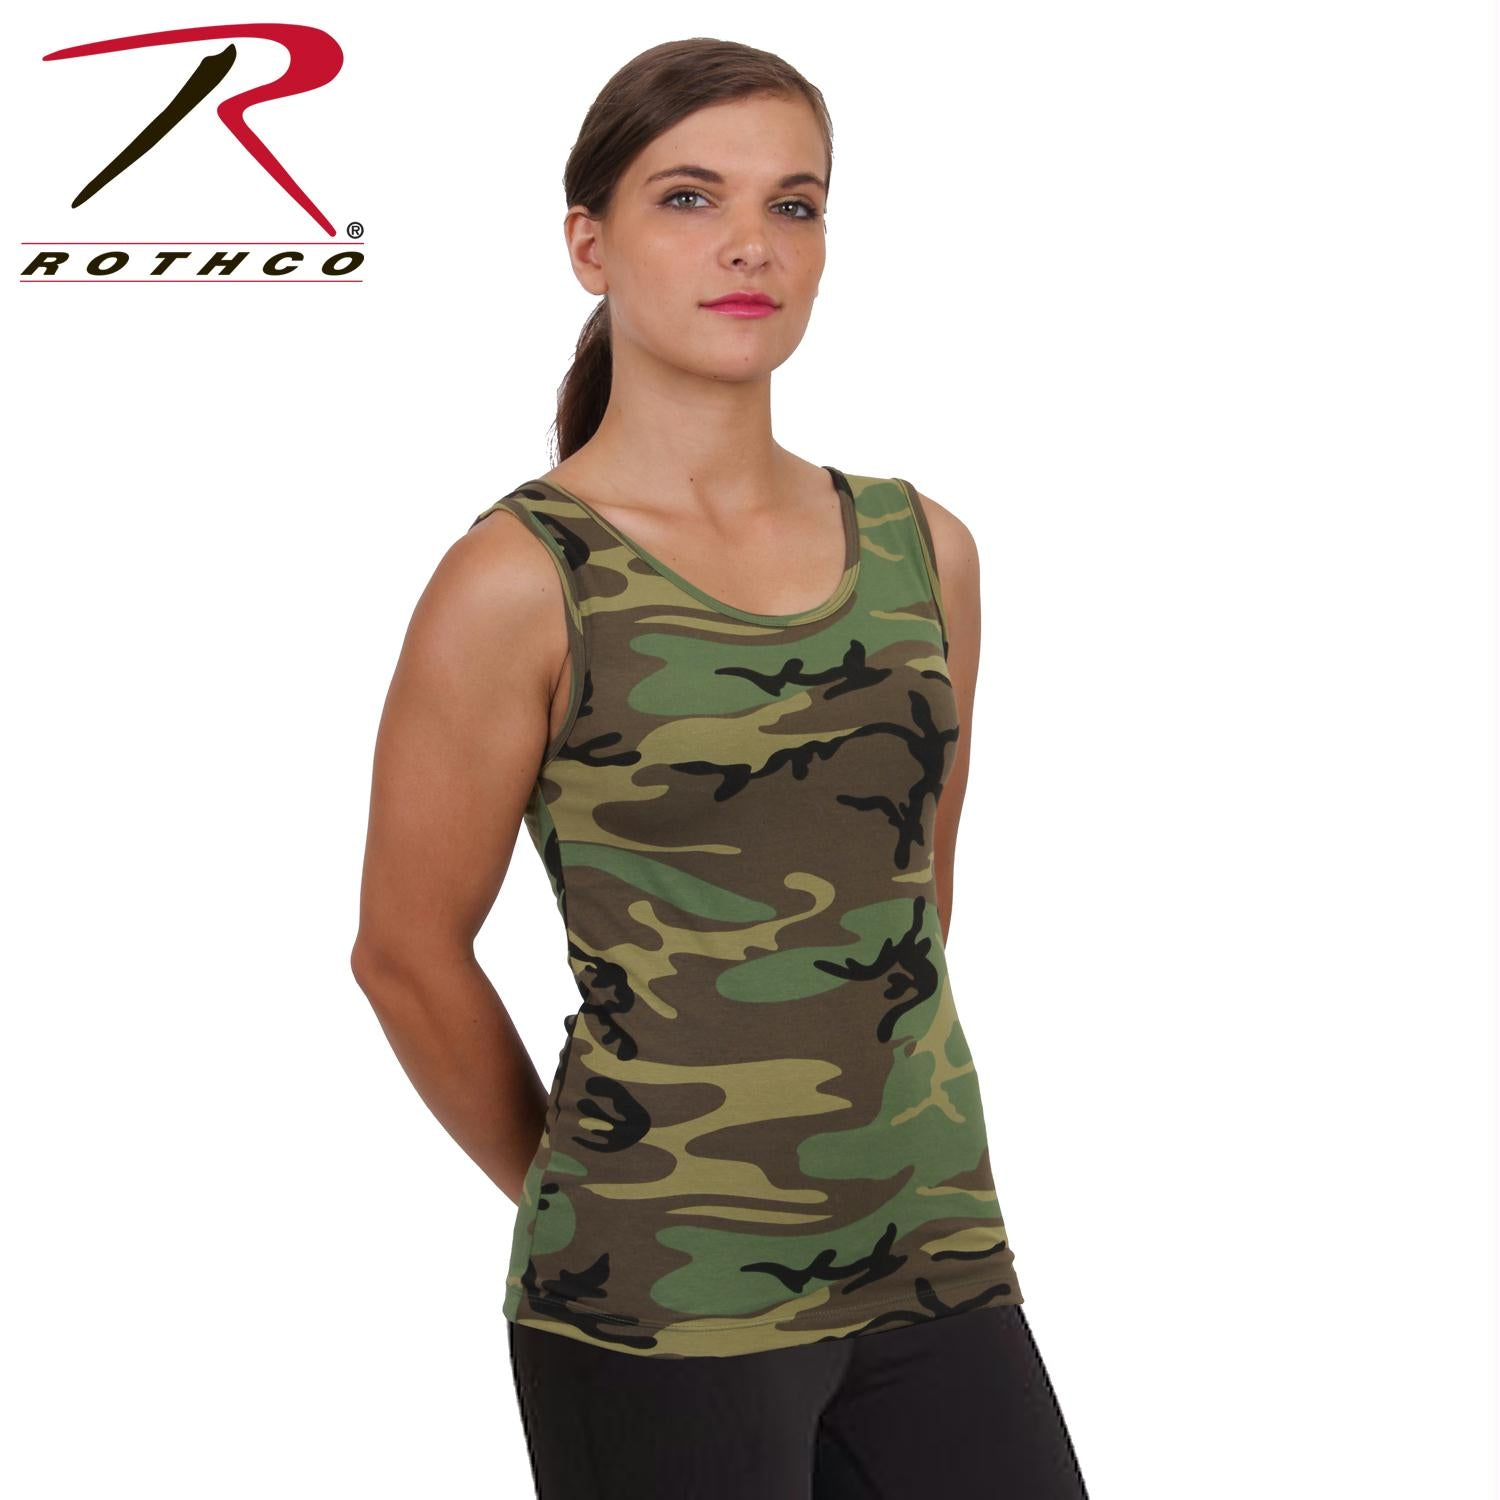 Rothco Womens Camo Stretch Tank Top - Woodland Camo / S